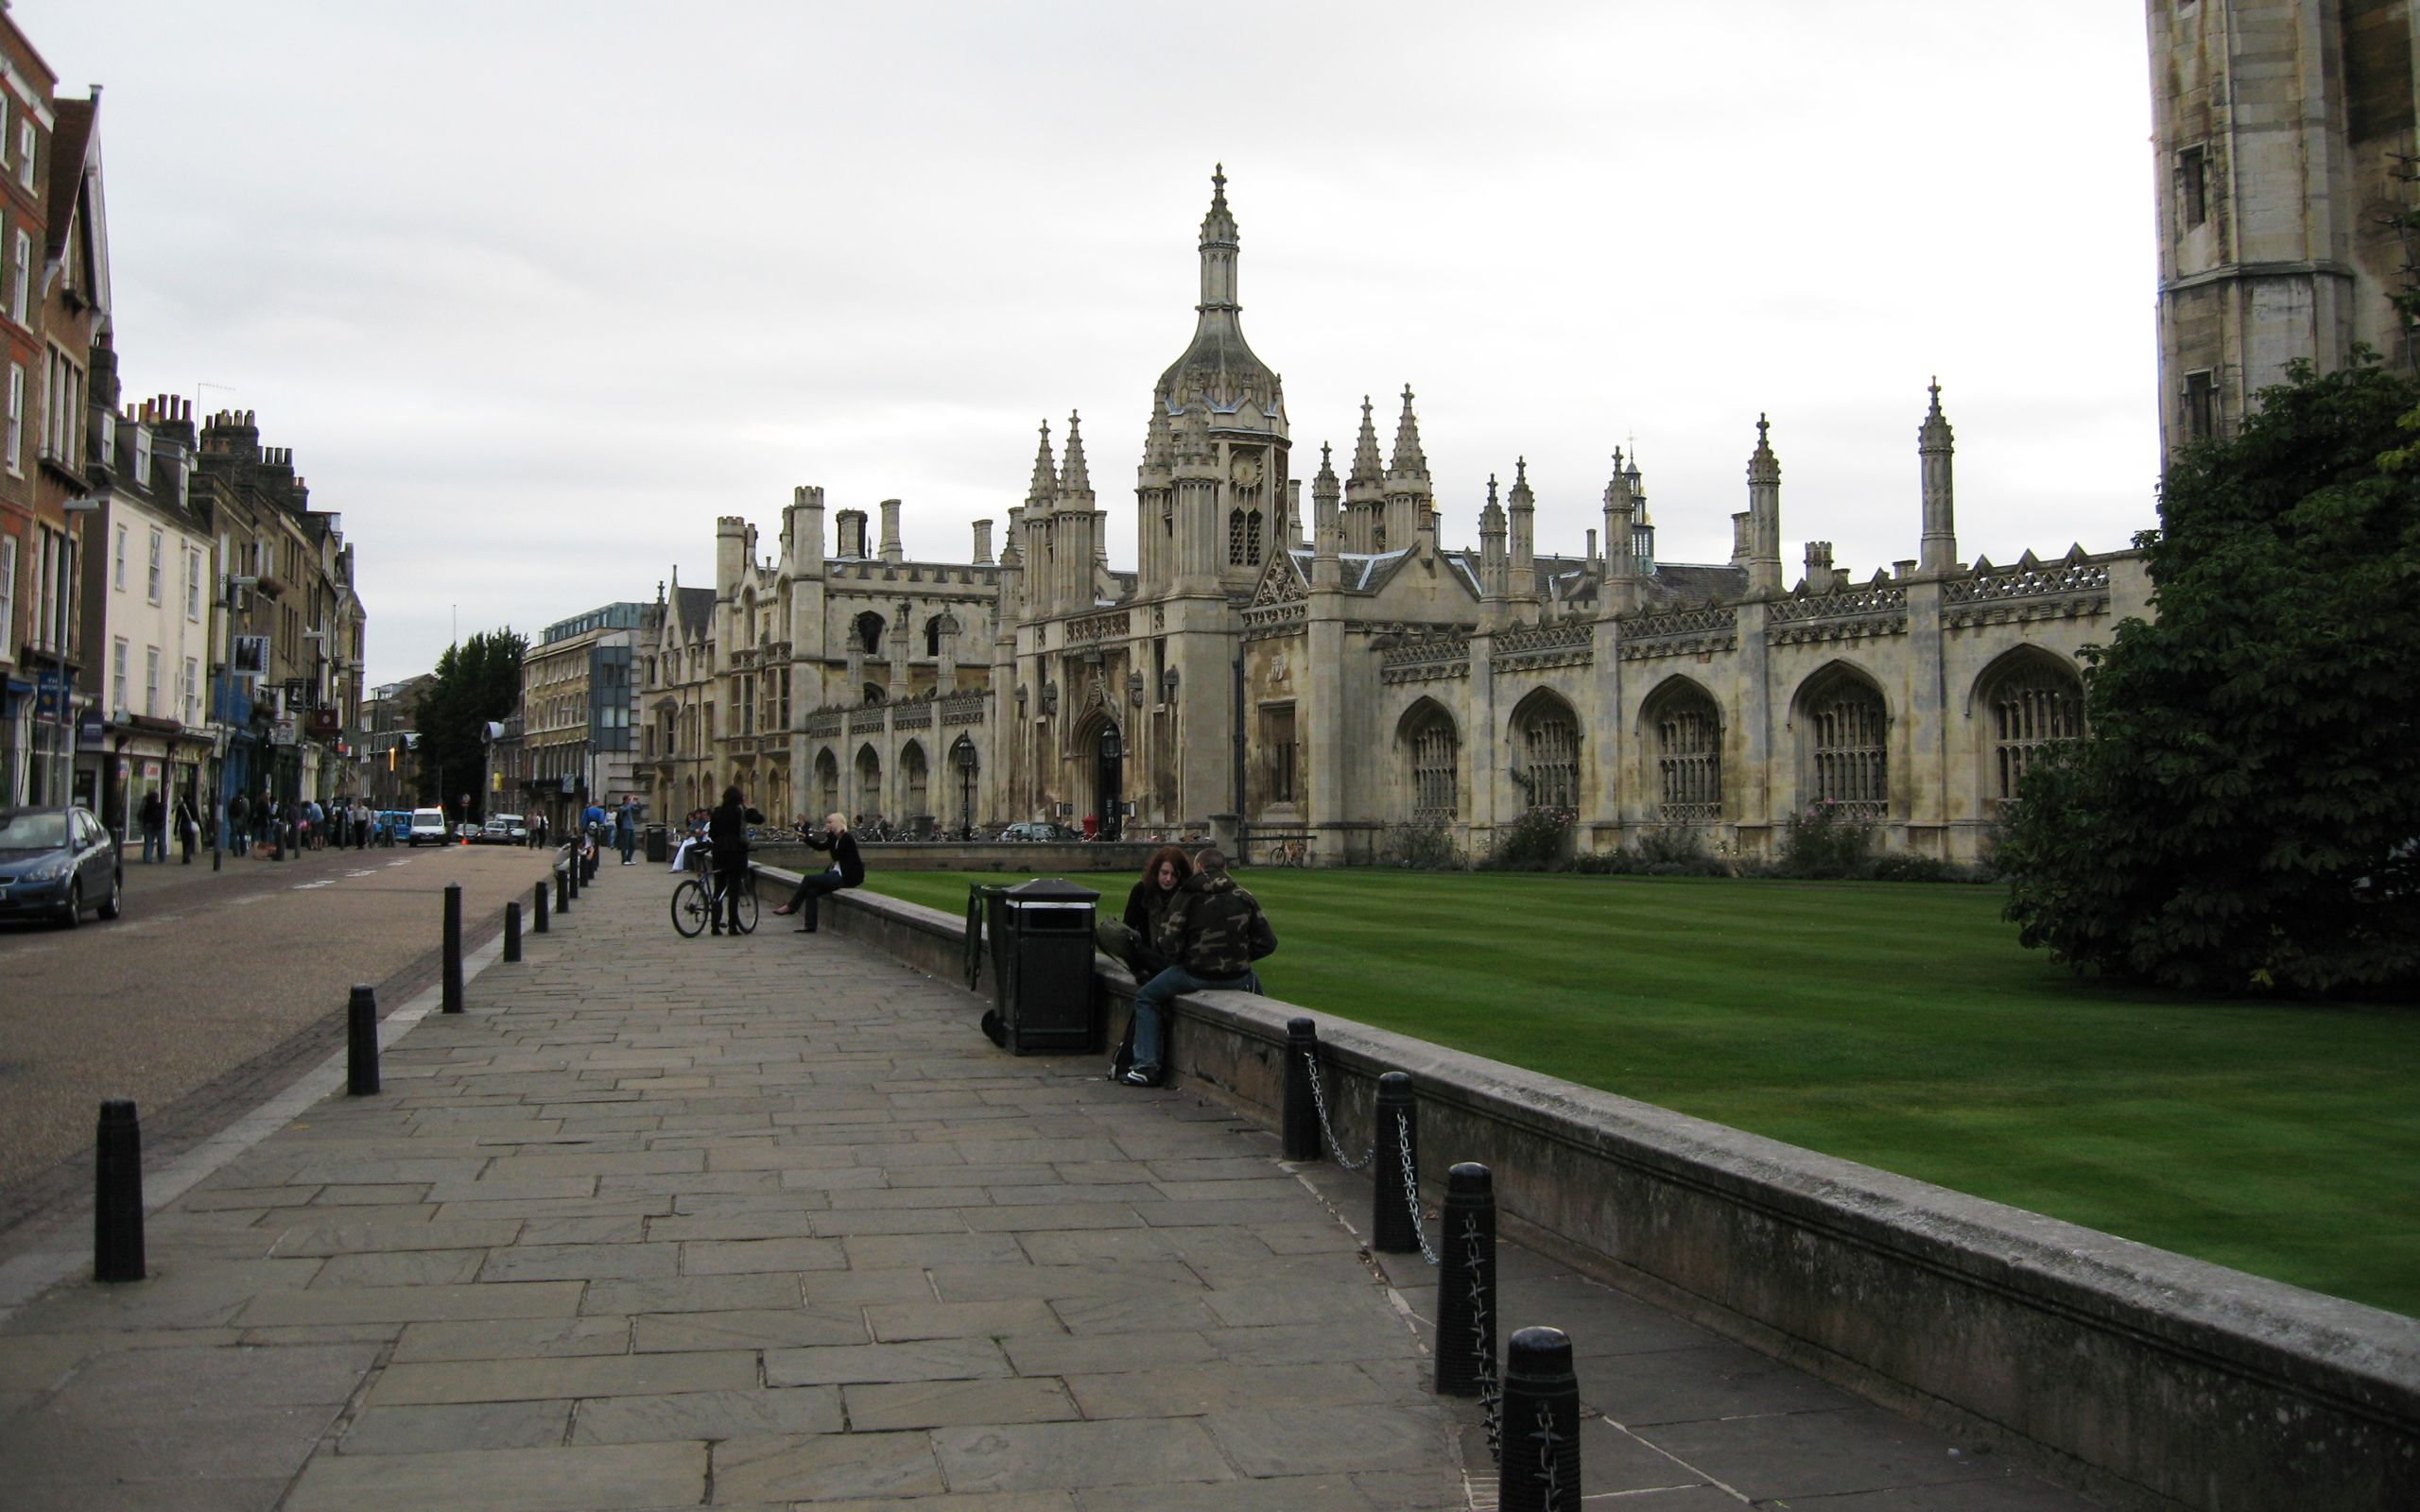 Kings Parad, Cambridge. I miss this place. Cannot wait to go back!